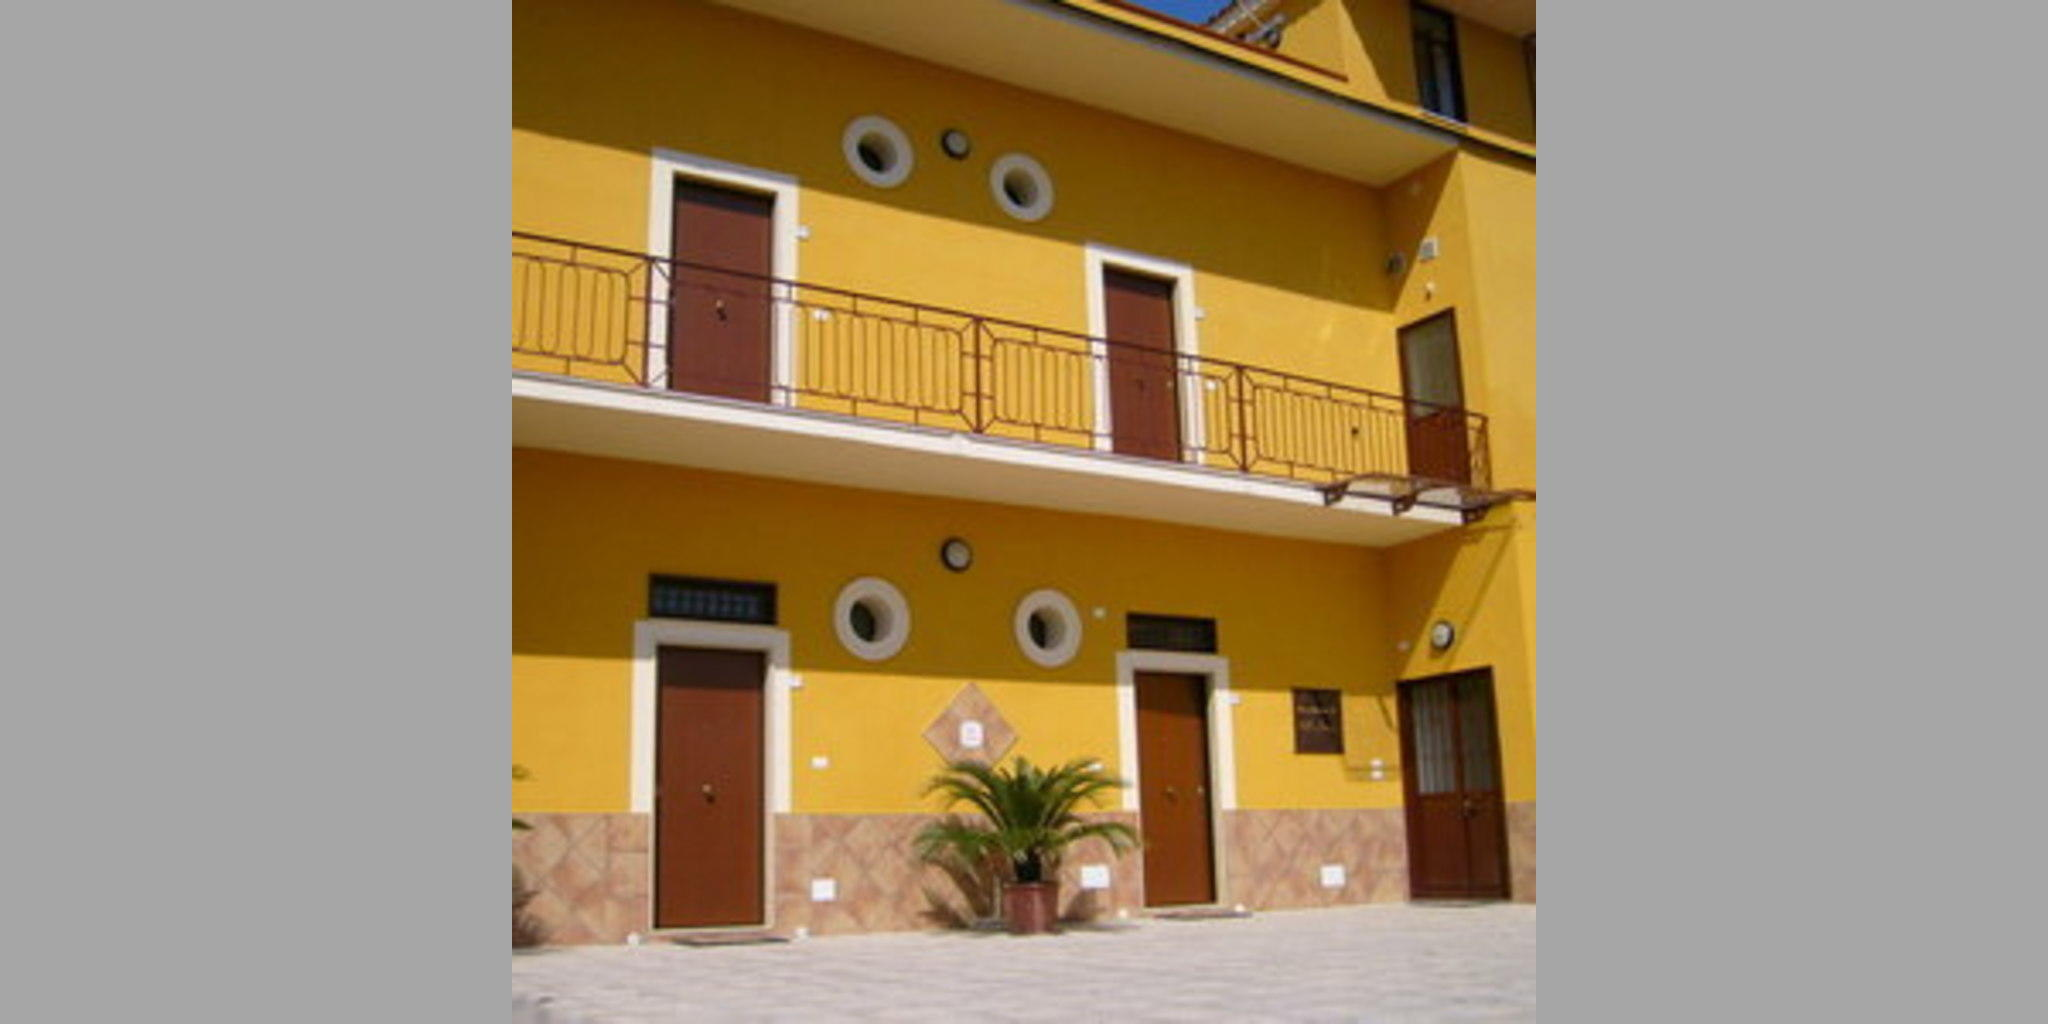 Bed & Breakfast Sarno - A Pochi Km Dalla Costiera Amalfitana